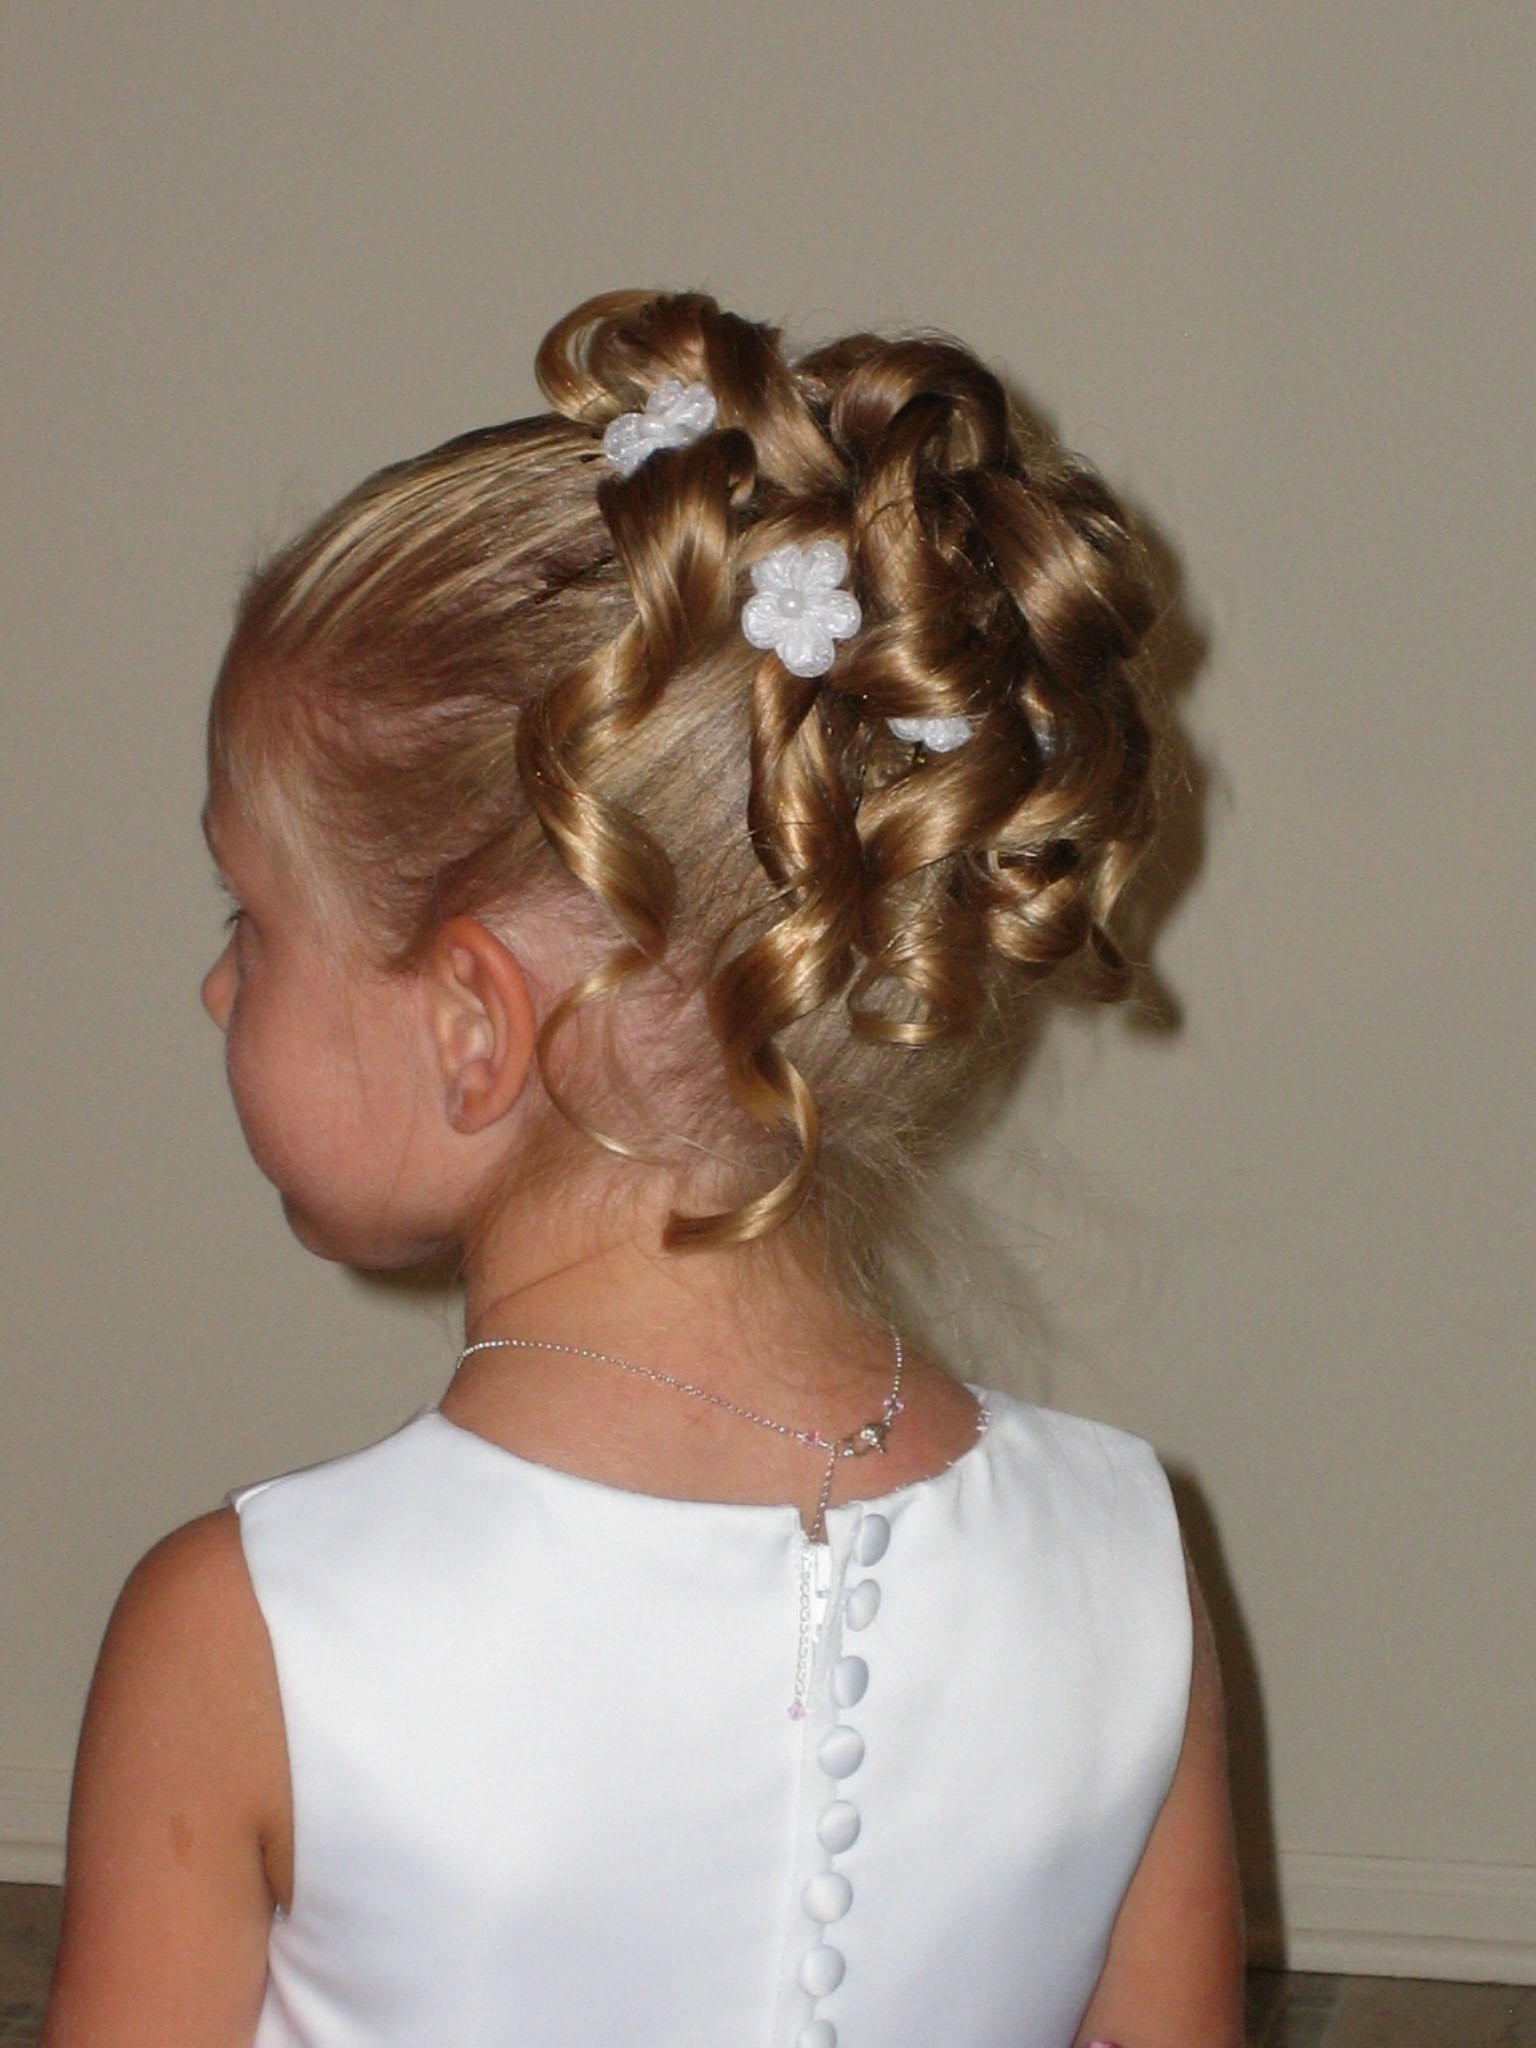 Most Popular Childrens Wedding Hairstyles For Short Hair For Flower Girl Wedding Hairstyles – Hairstyle For Women & Man (View 12 of 15)